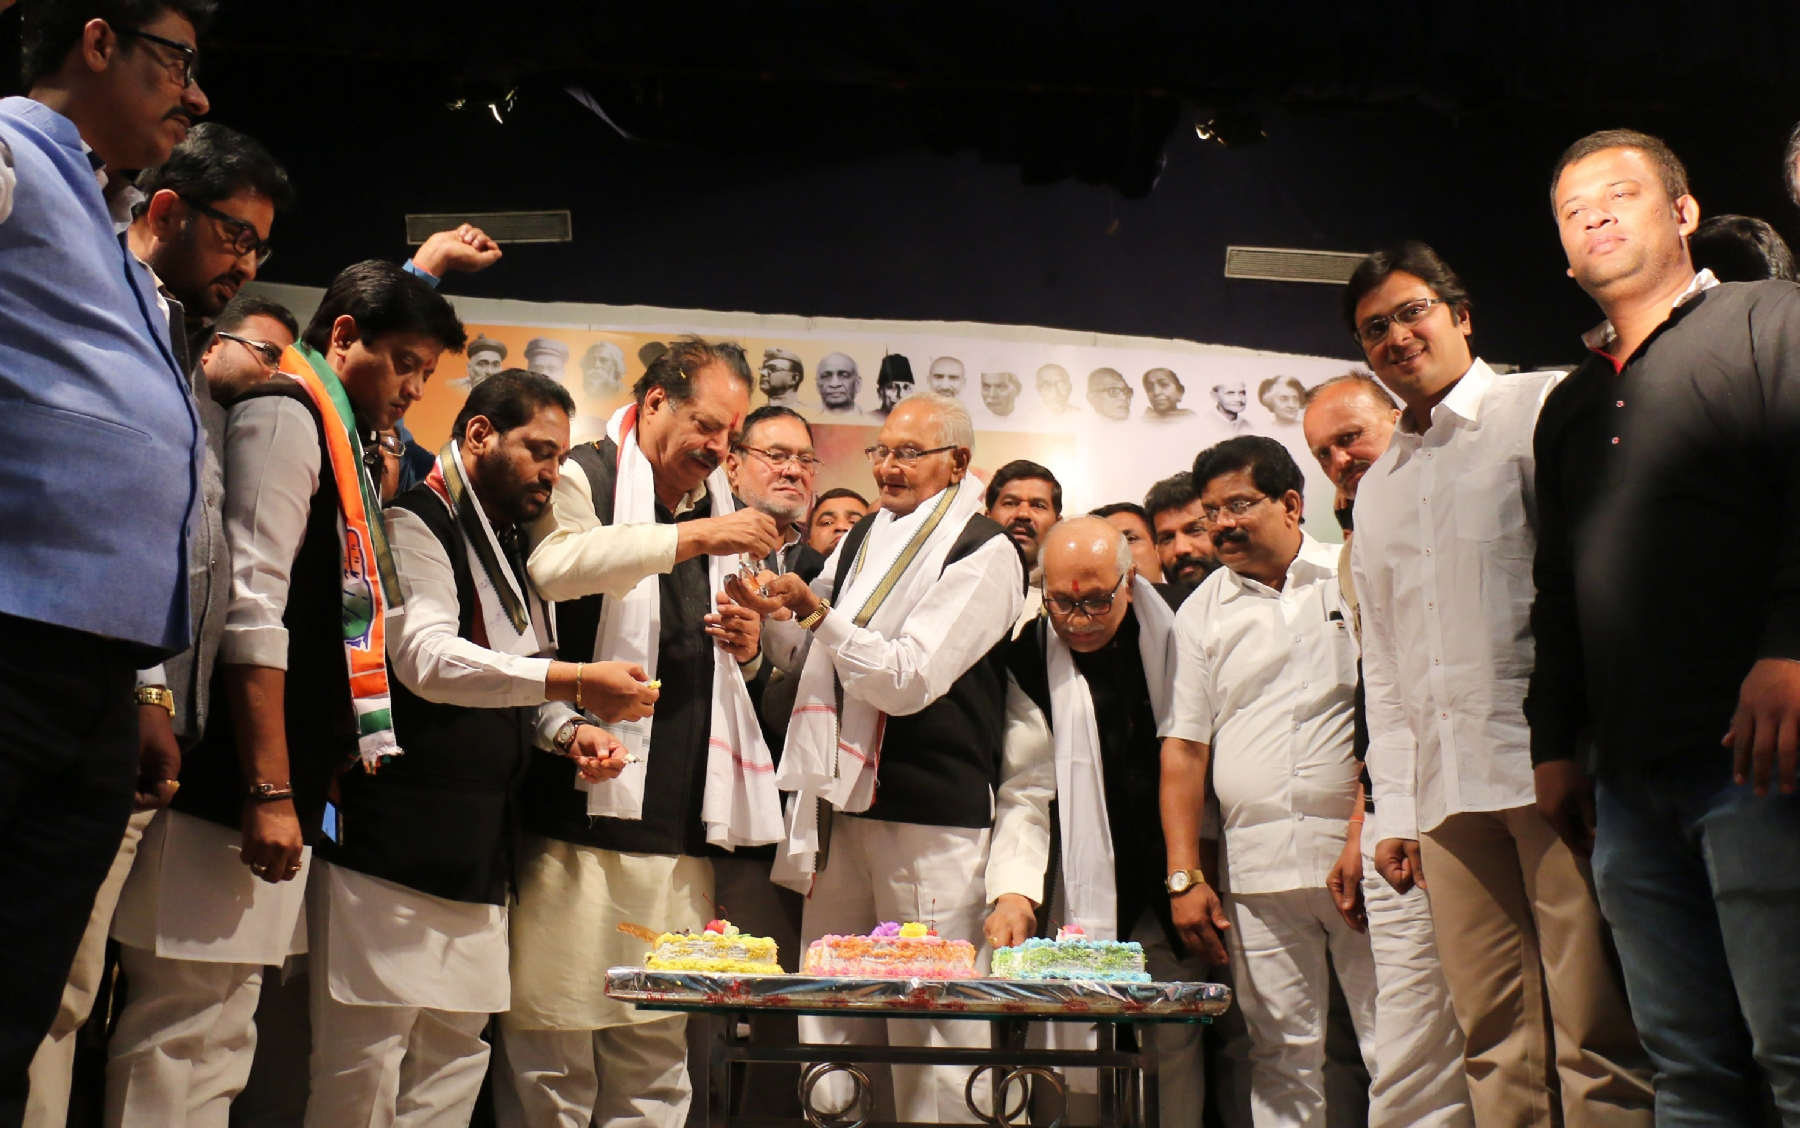 'Congress will regain its lost glory'